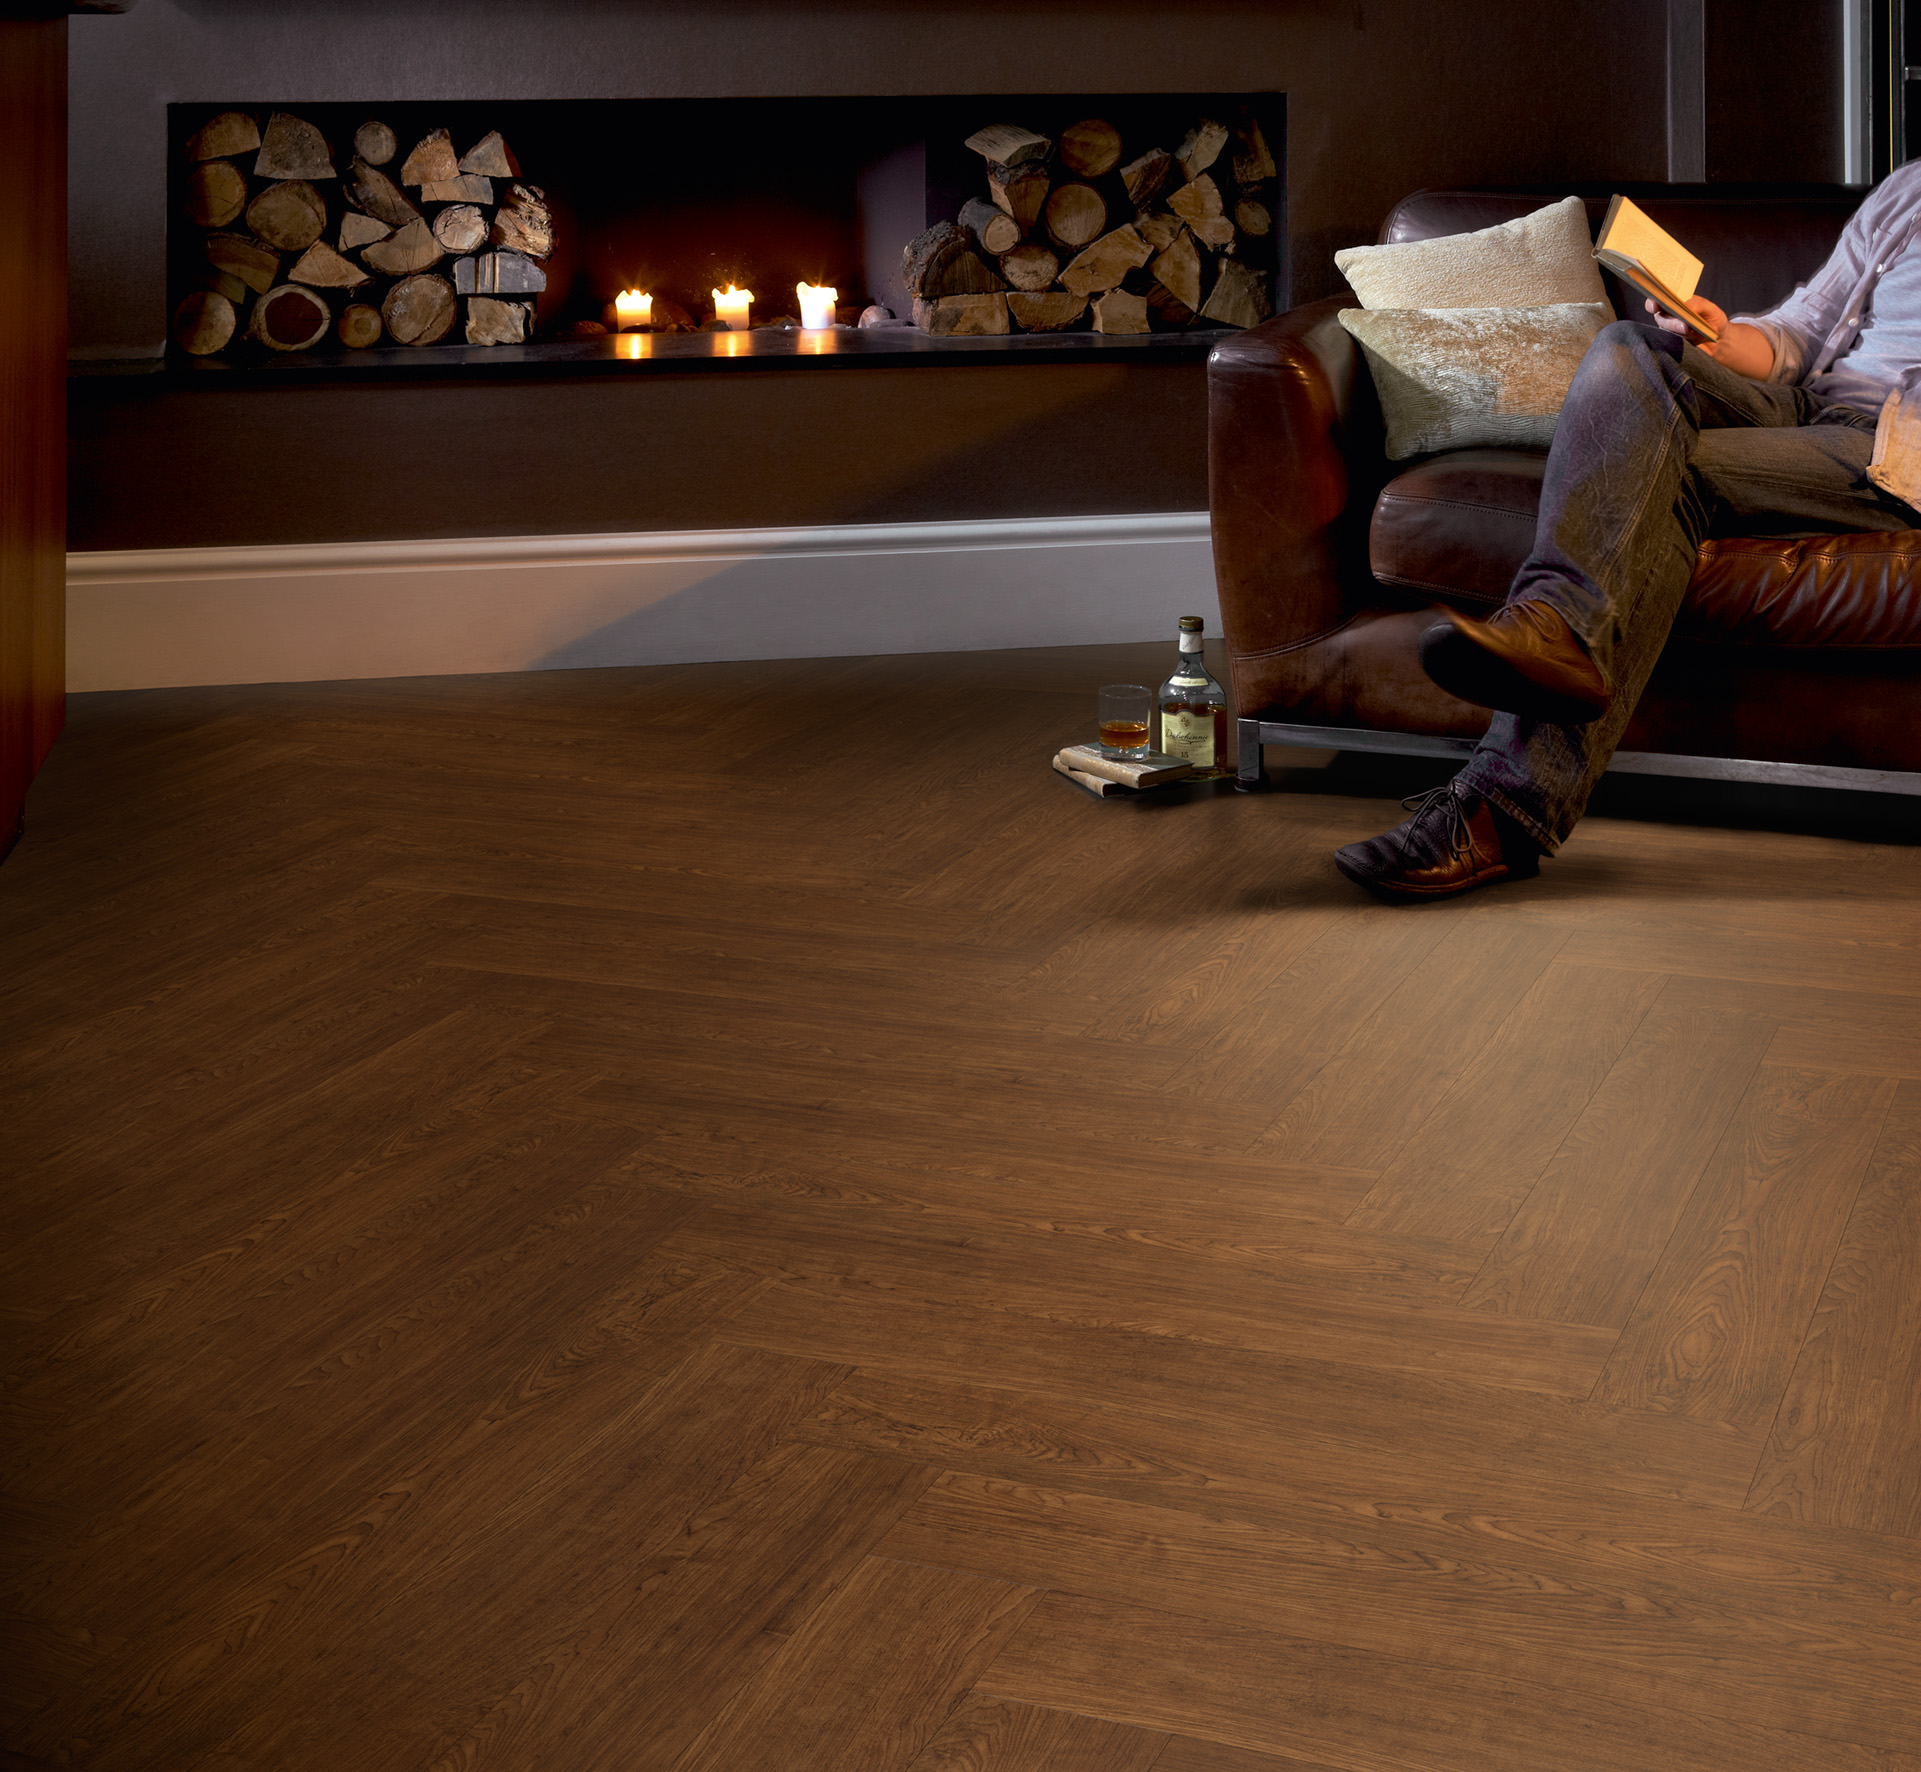 Millstone Walnut Hardwood Flooring: November 2012